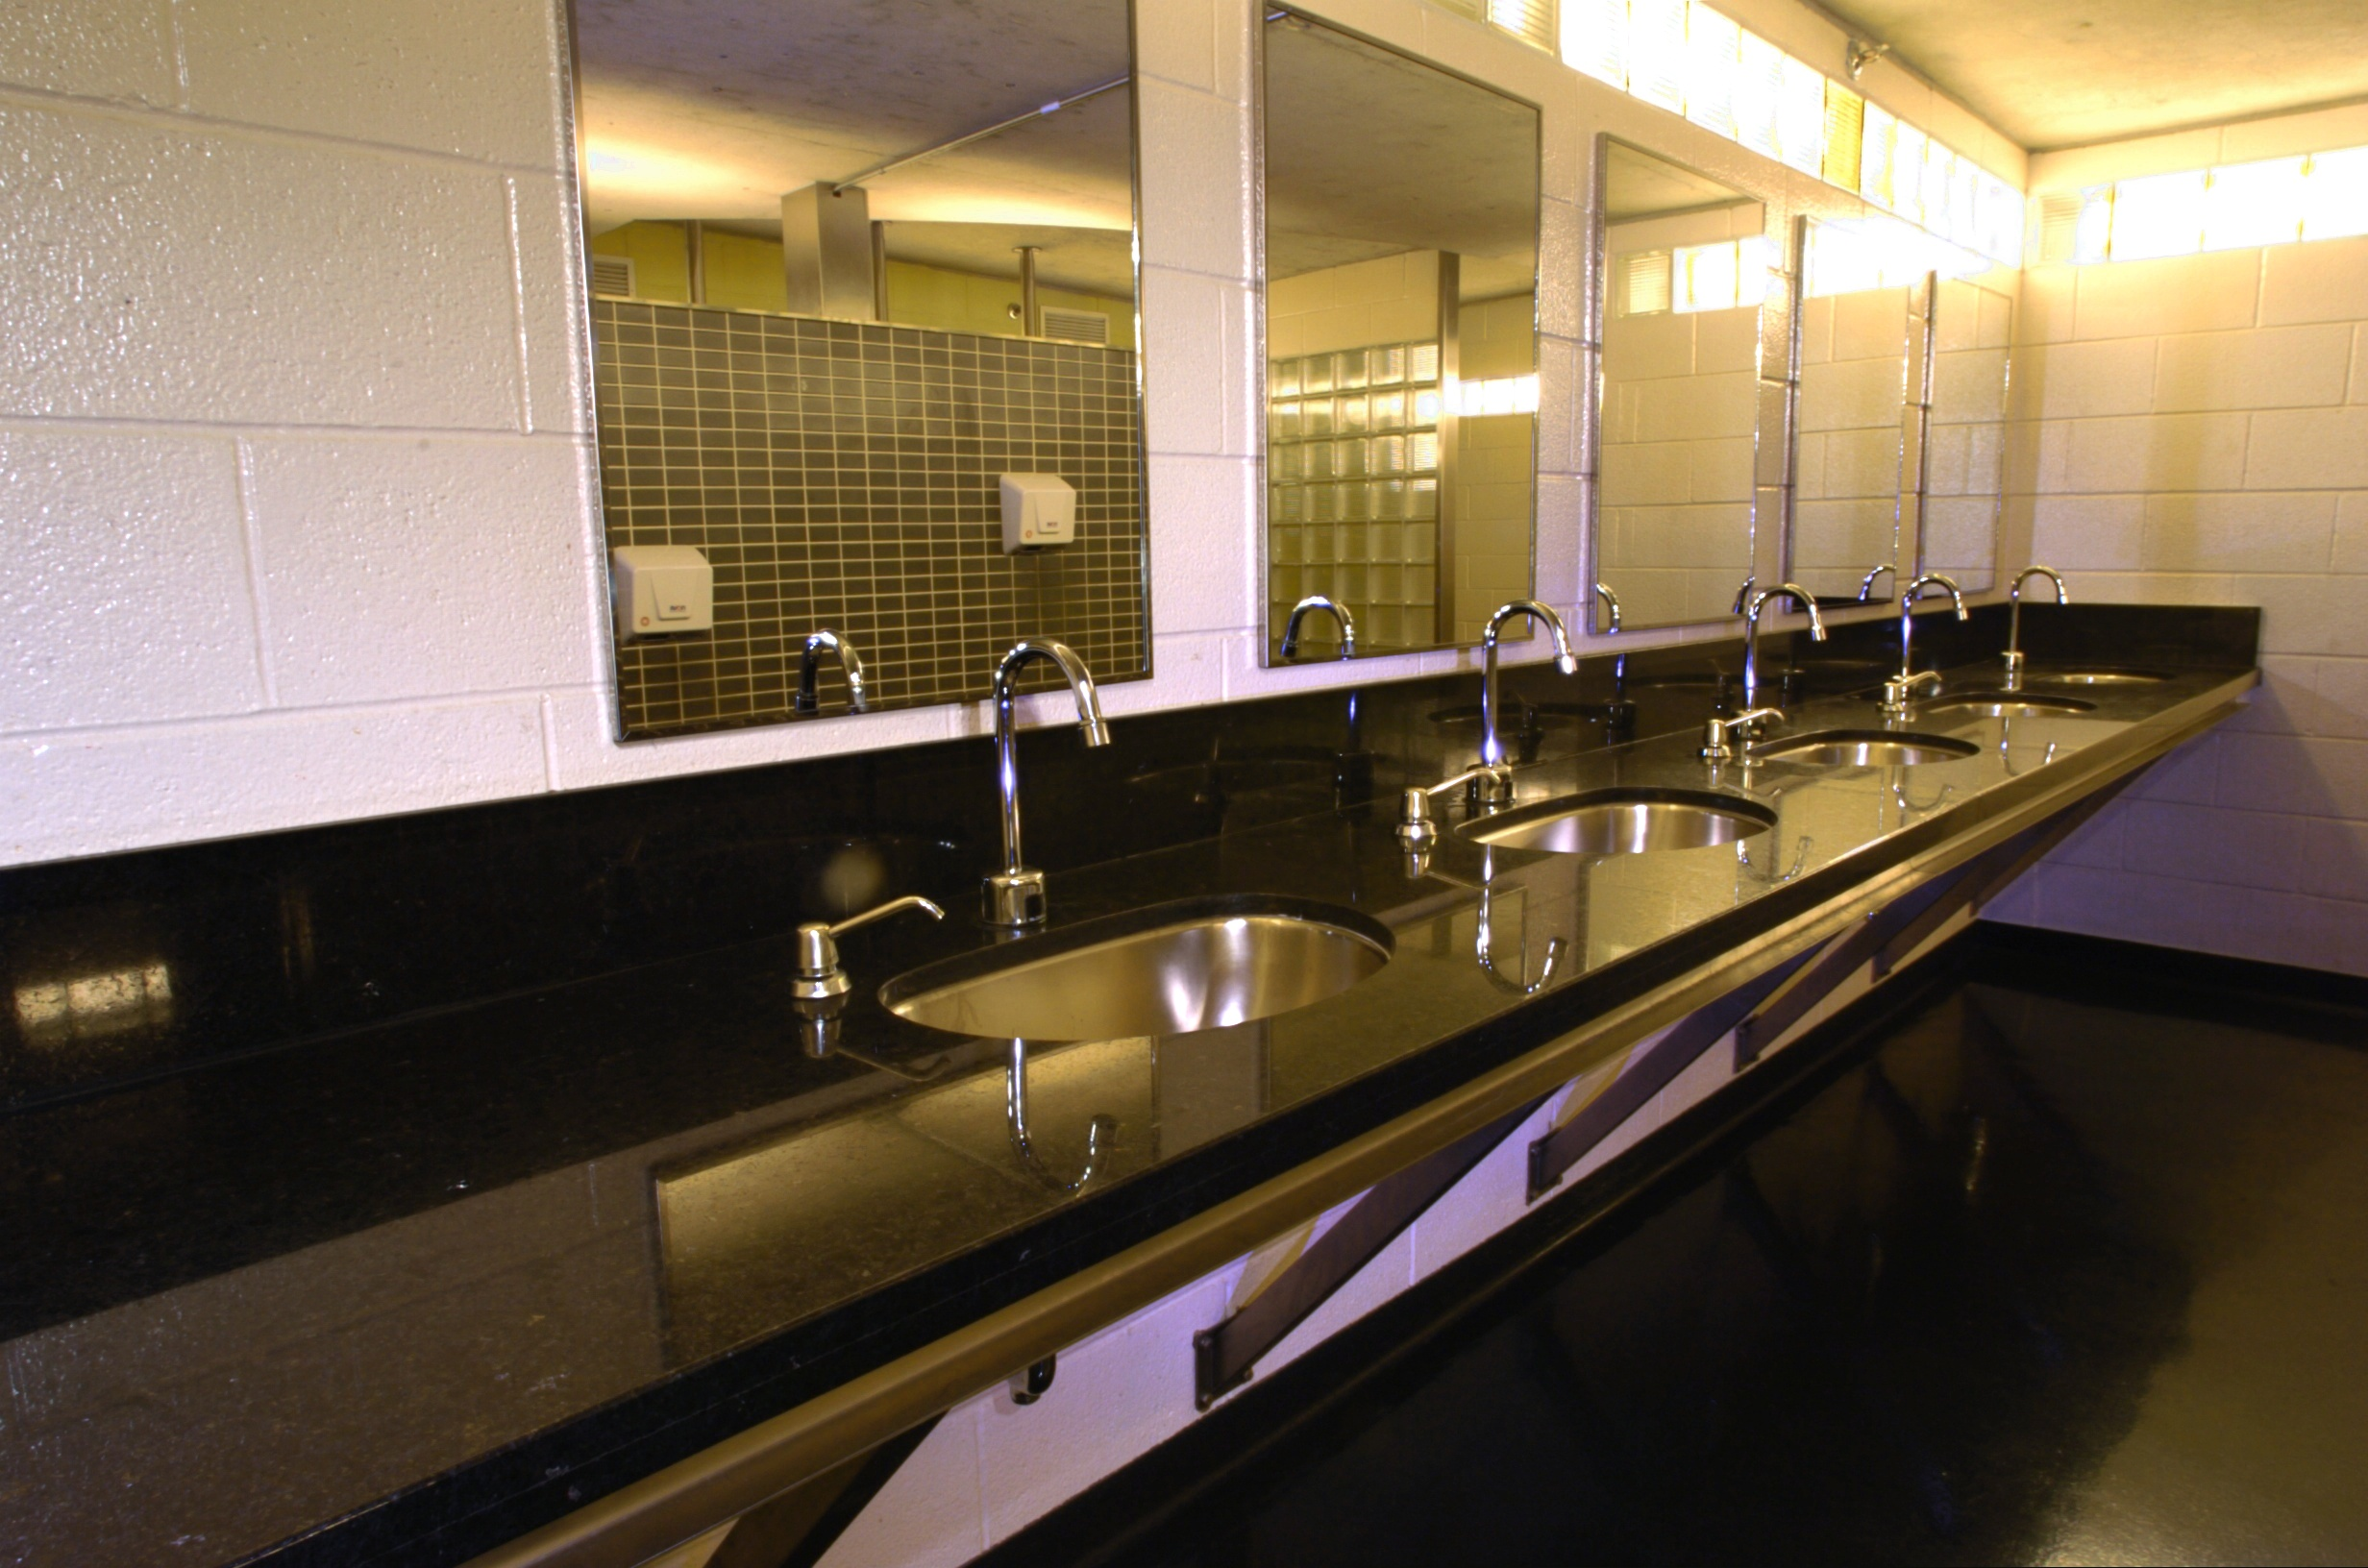 These washrooms look like they  39 re right out of a 5 star hotel of the future  It is very unusual to see such clean state of the art washrooms in an. cement jpg